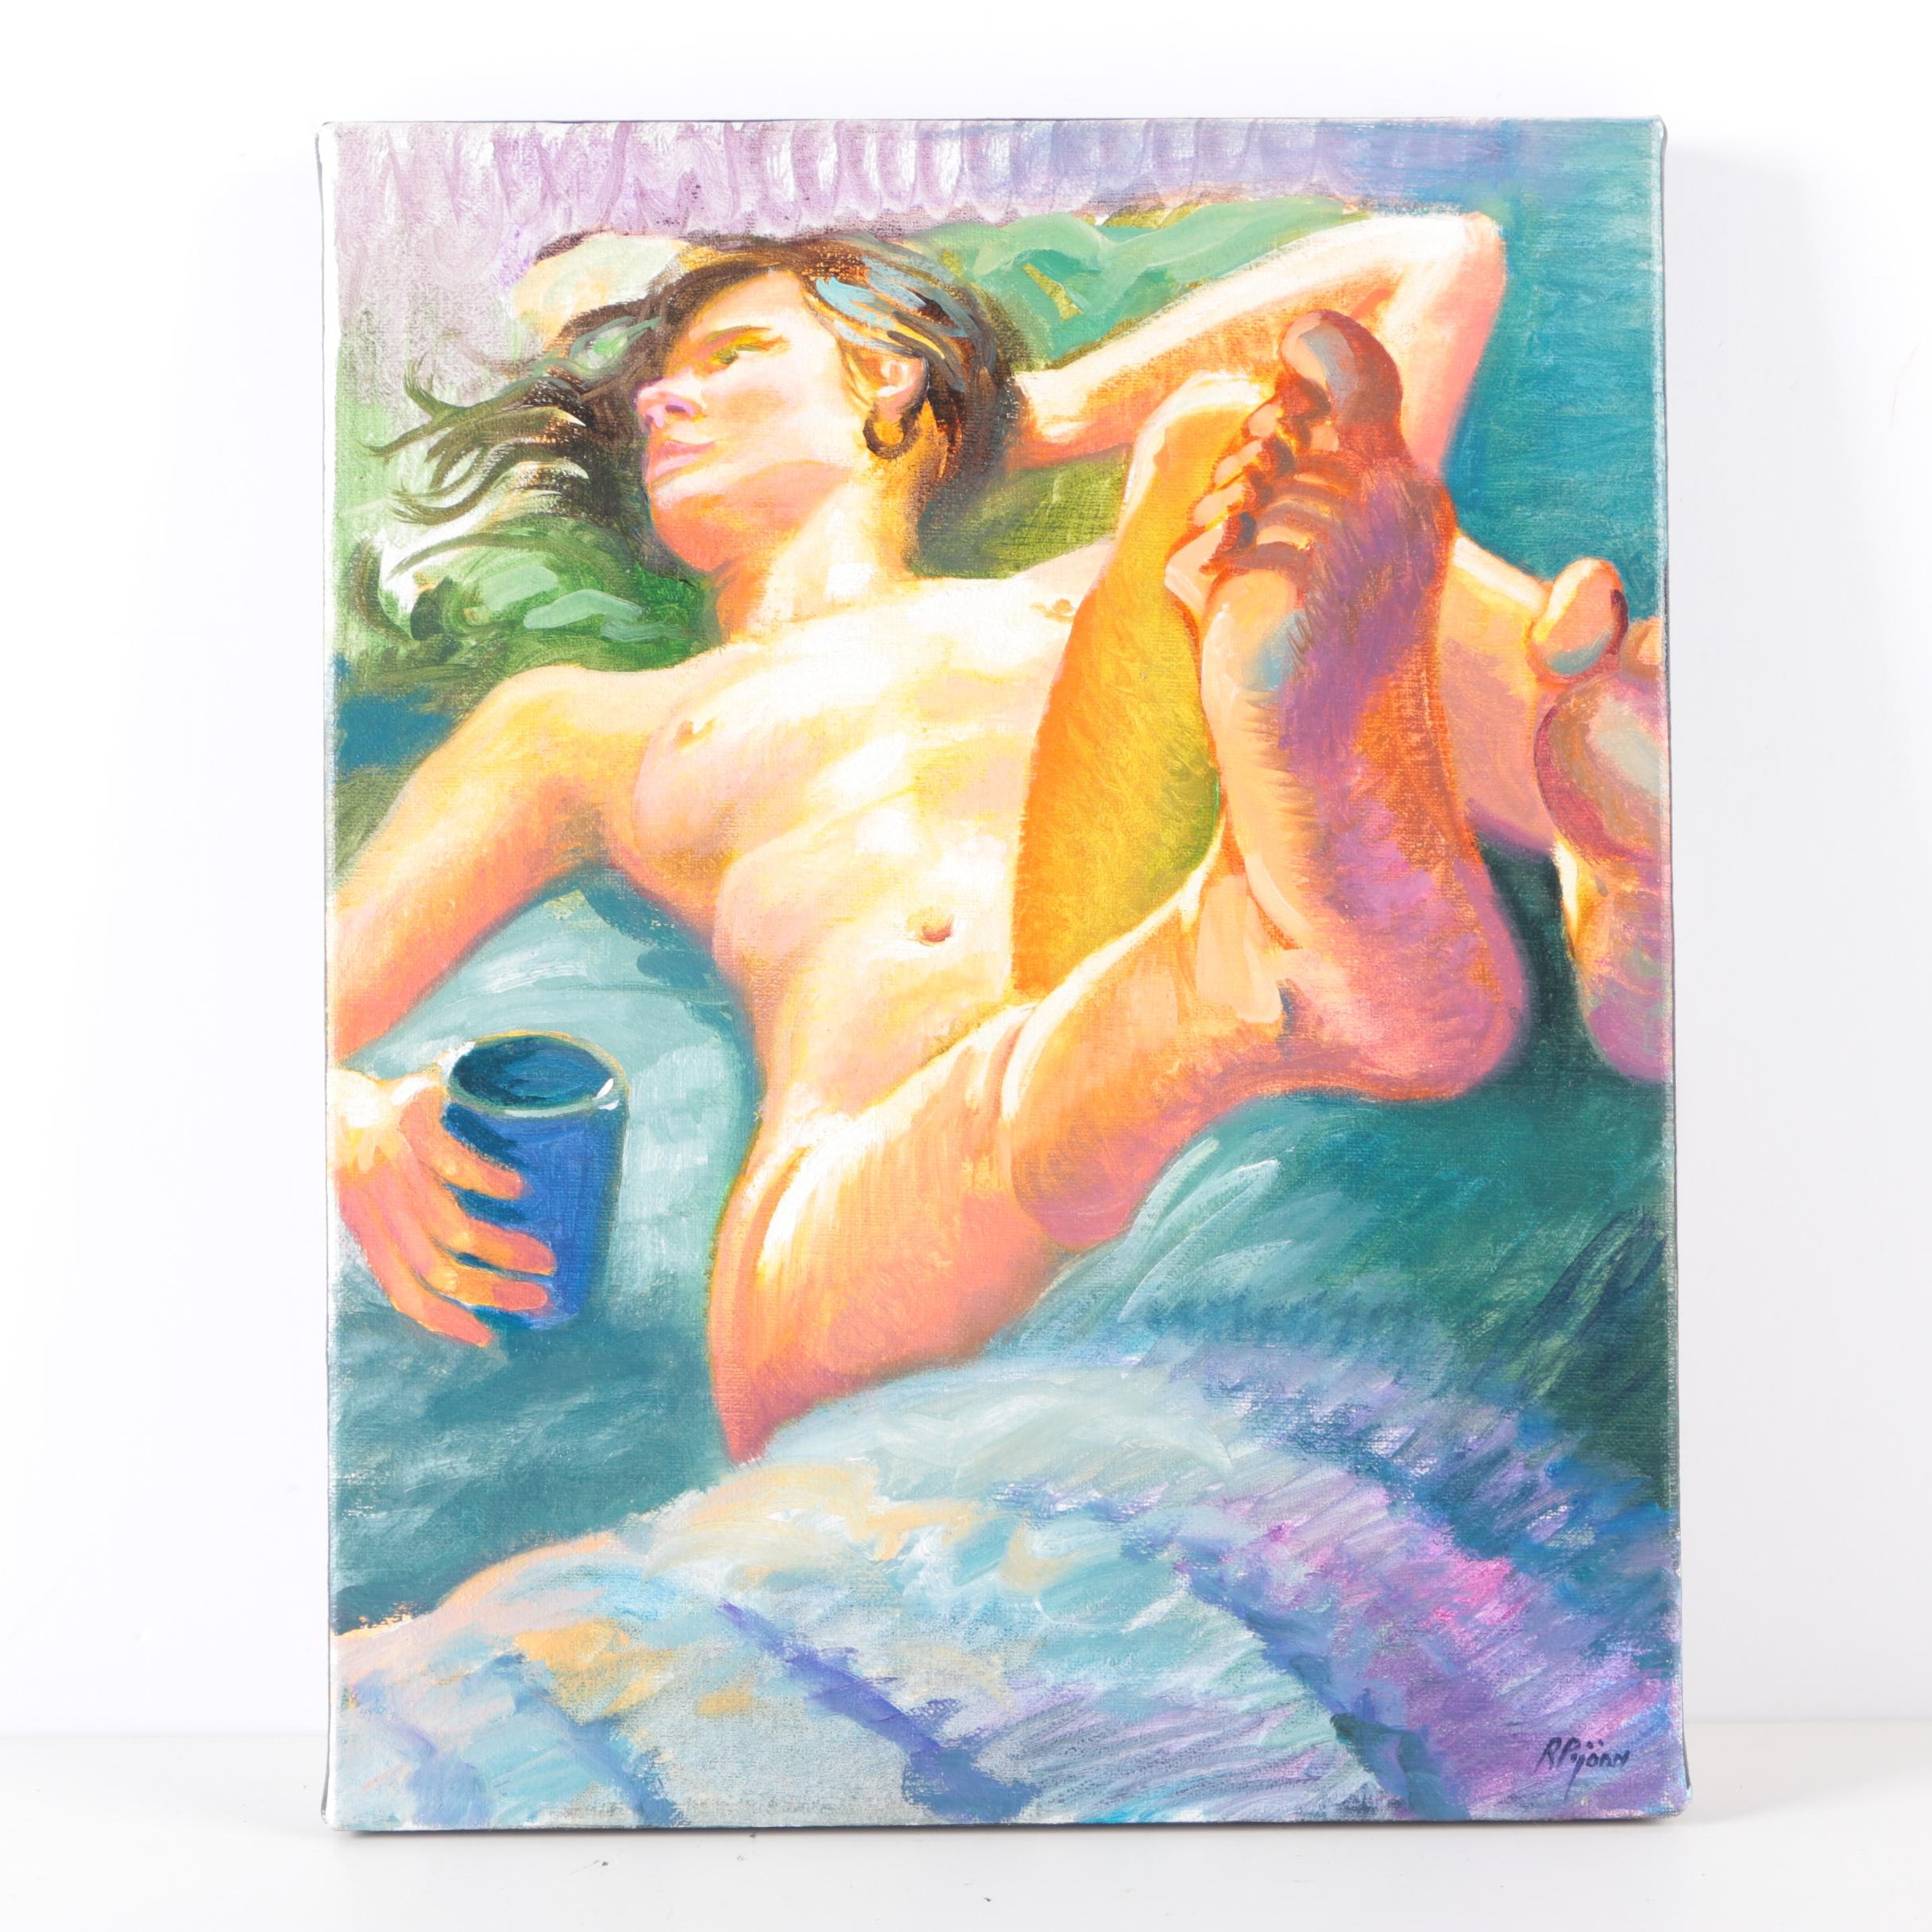 """Randy Pijoan 2009 Oil Painting on Canvas """"Nude Study"""""""